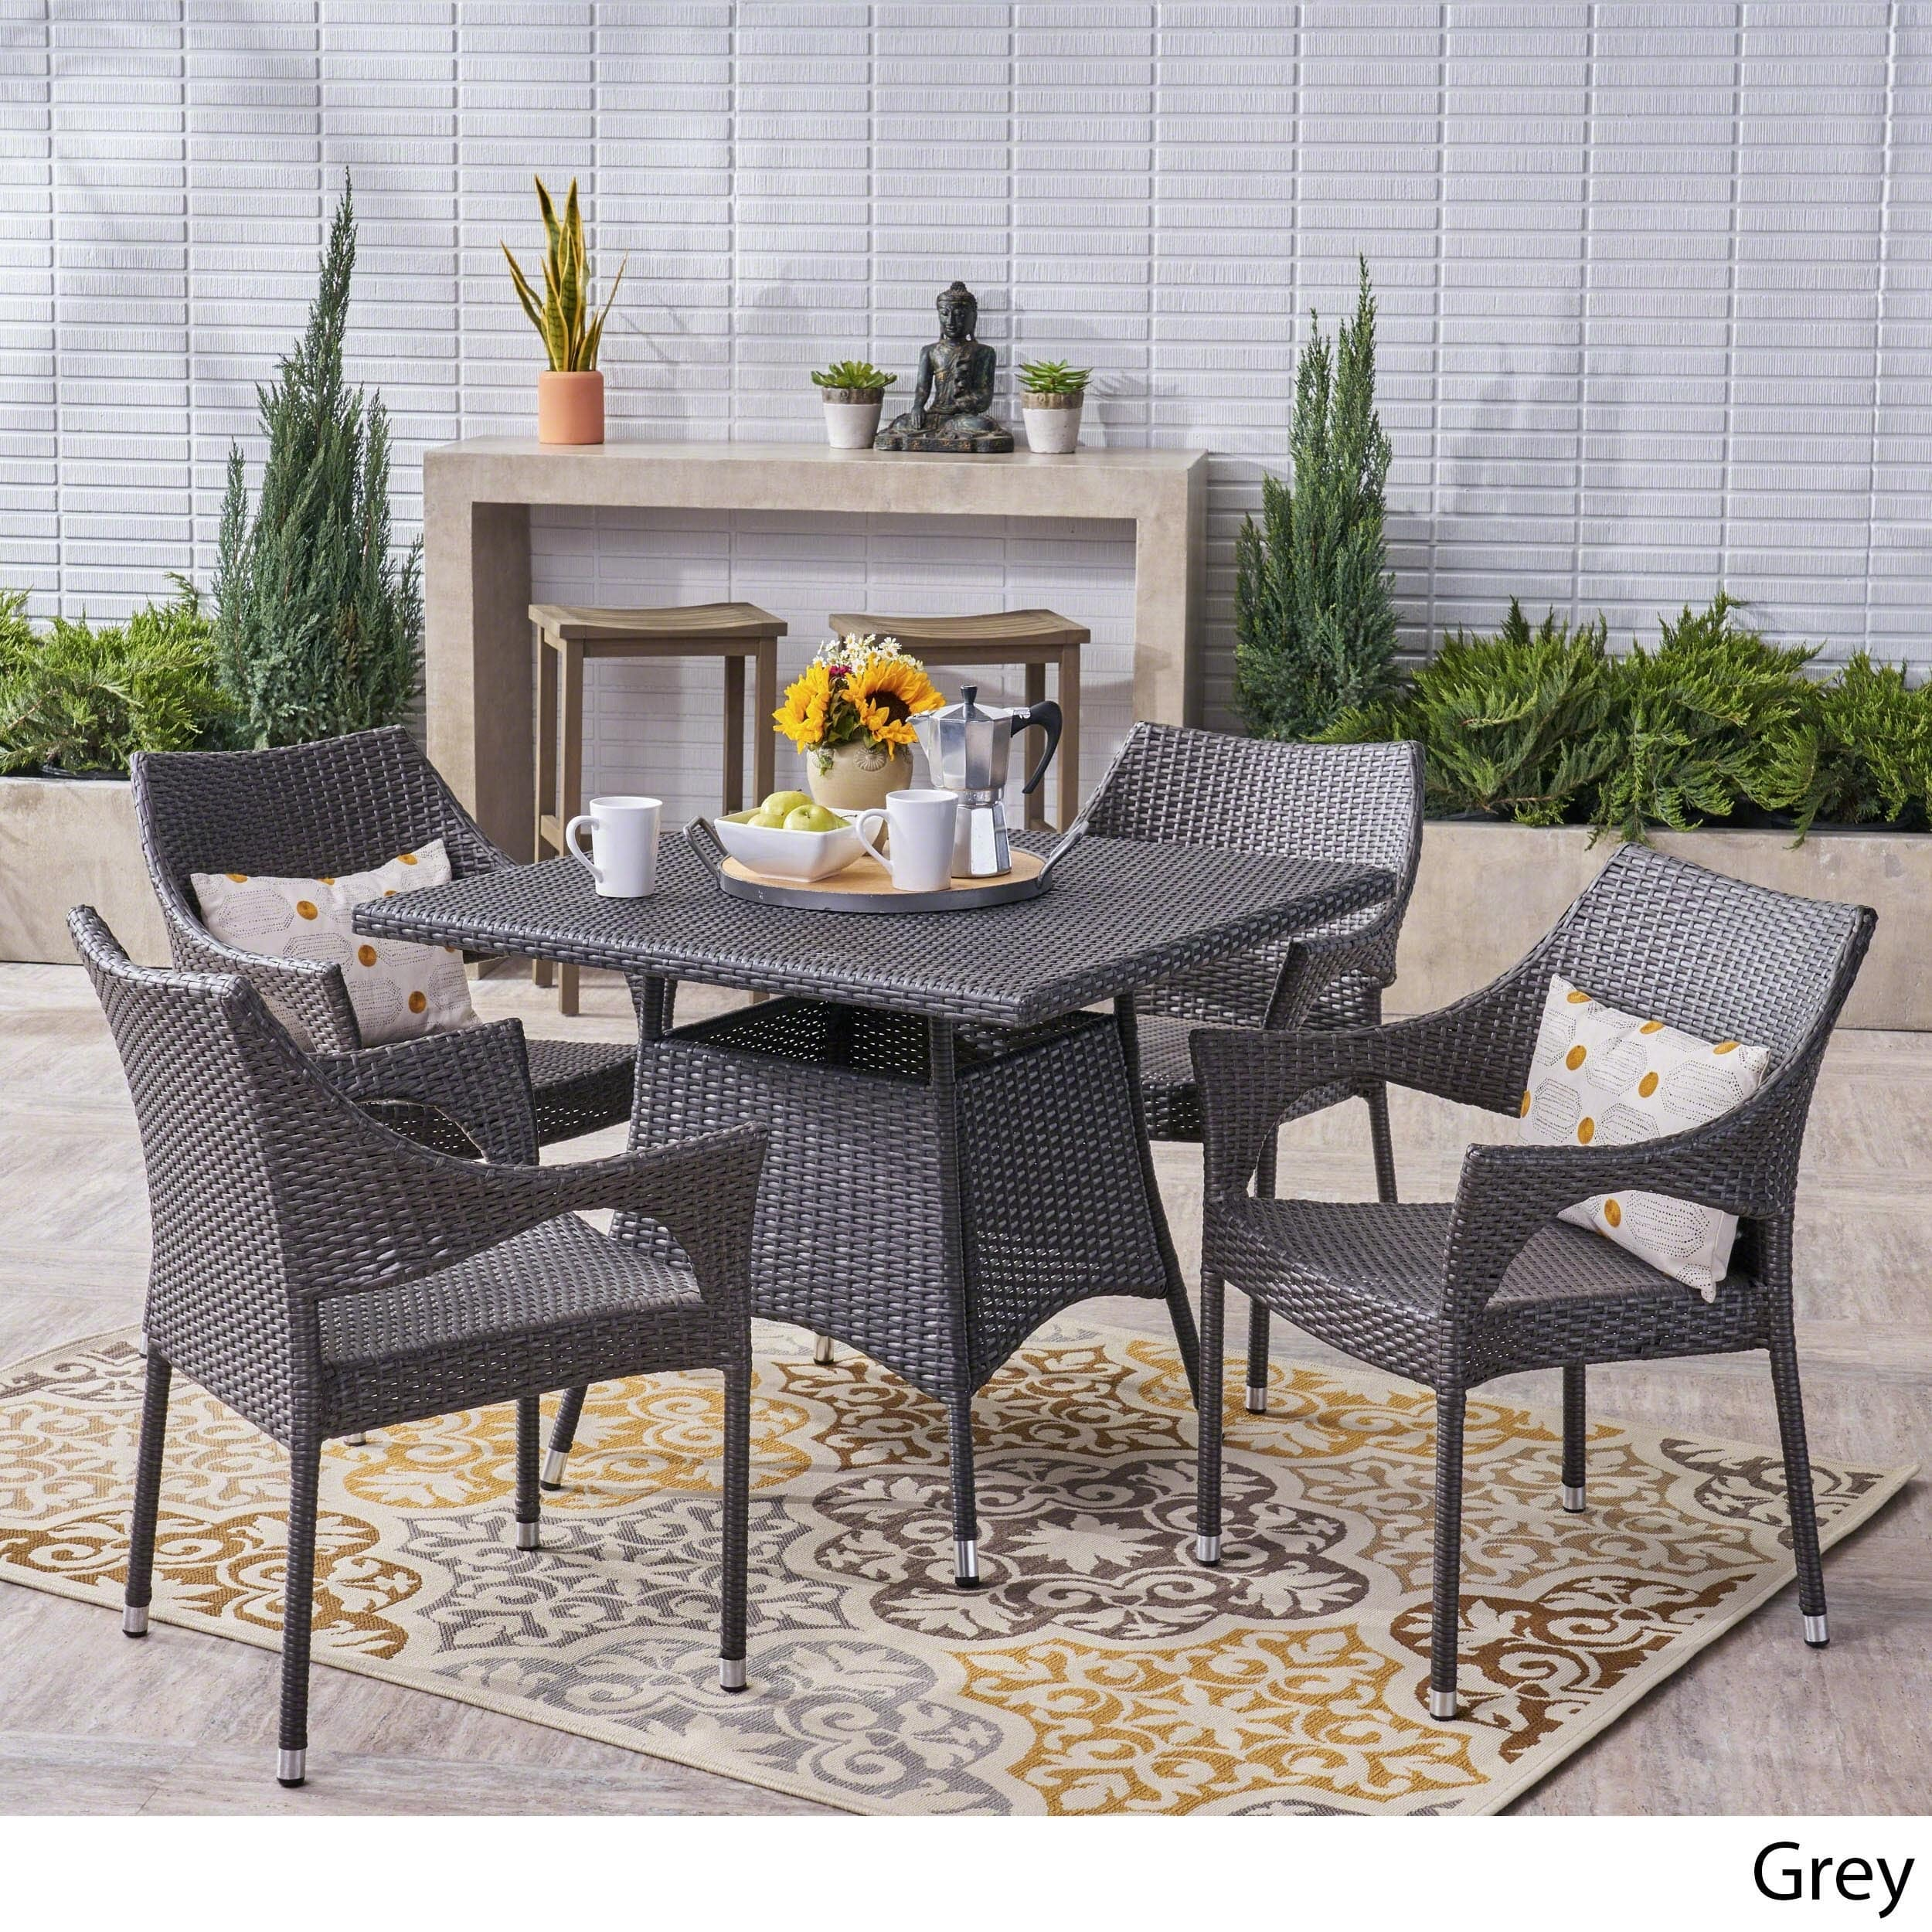 Christopher Knight Home Arden Outdoor 5-piece Wicker Dining Set by